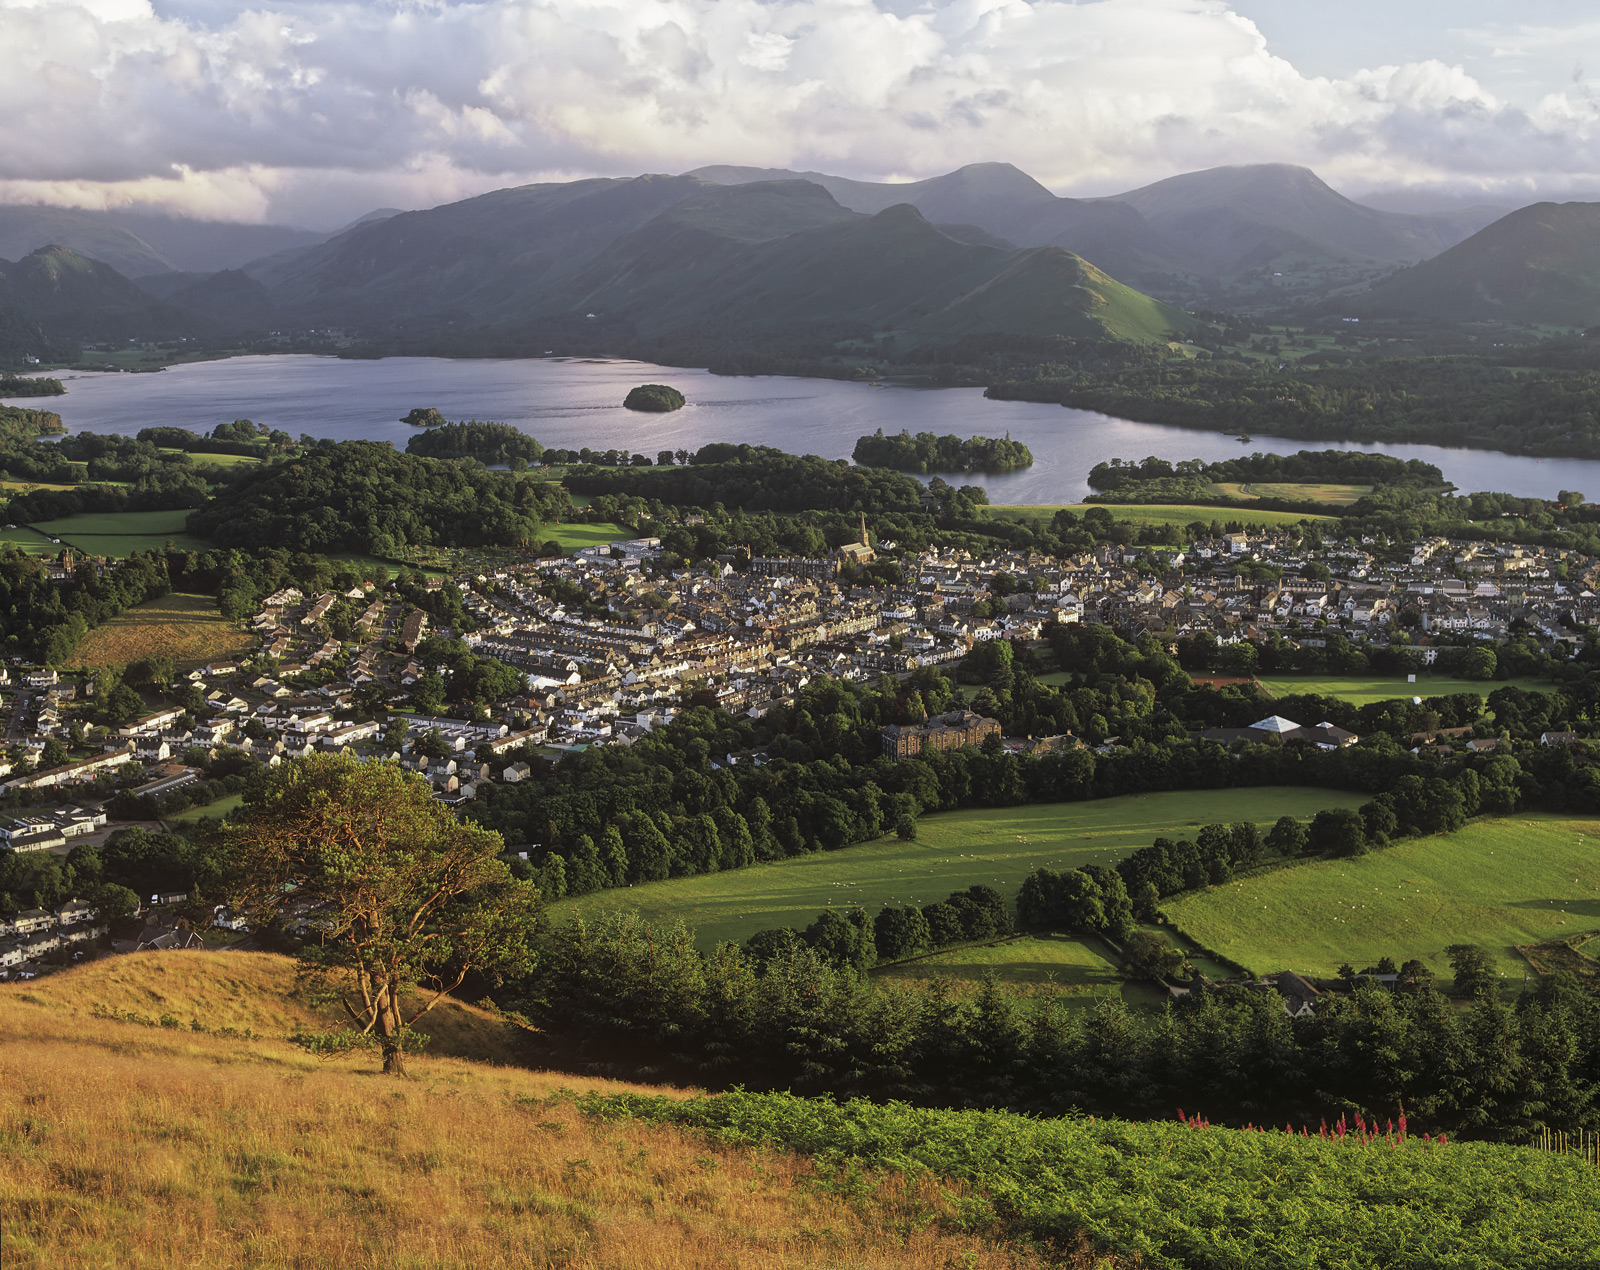 The Lake District town of Keswick sprawled out like a map in front of Derwent water below Latrigg Fell and the distant Cats Bells...